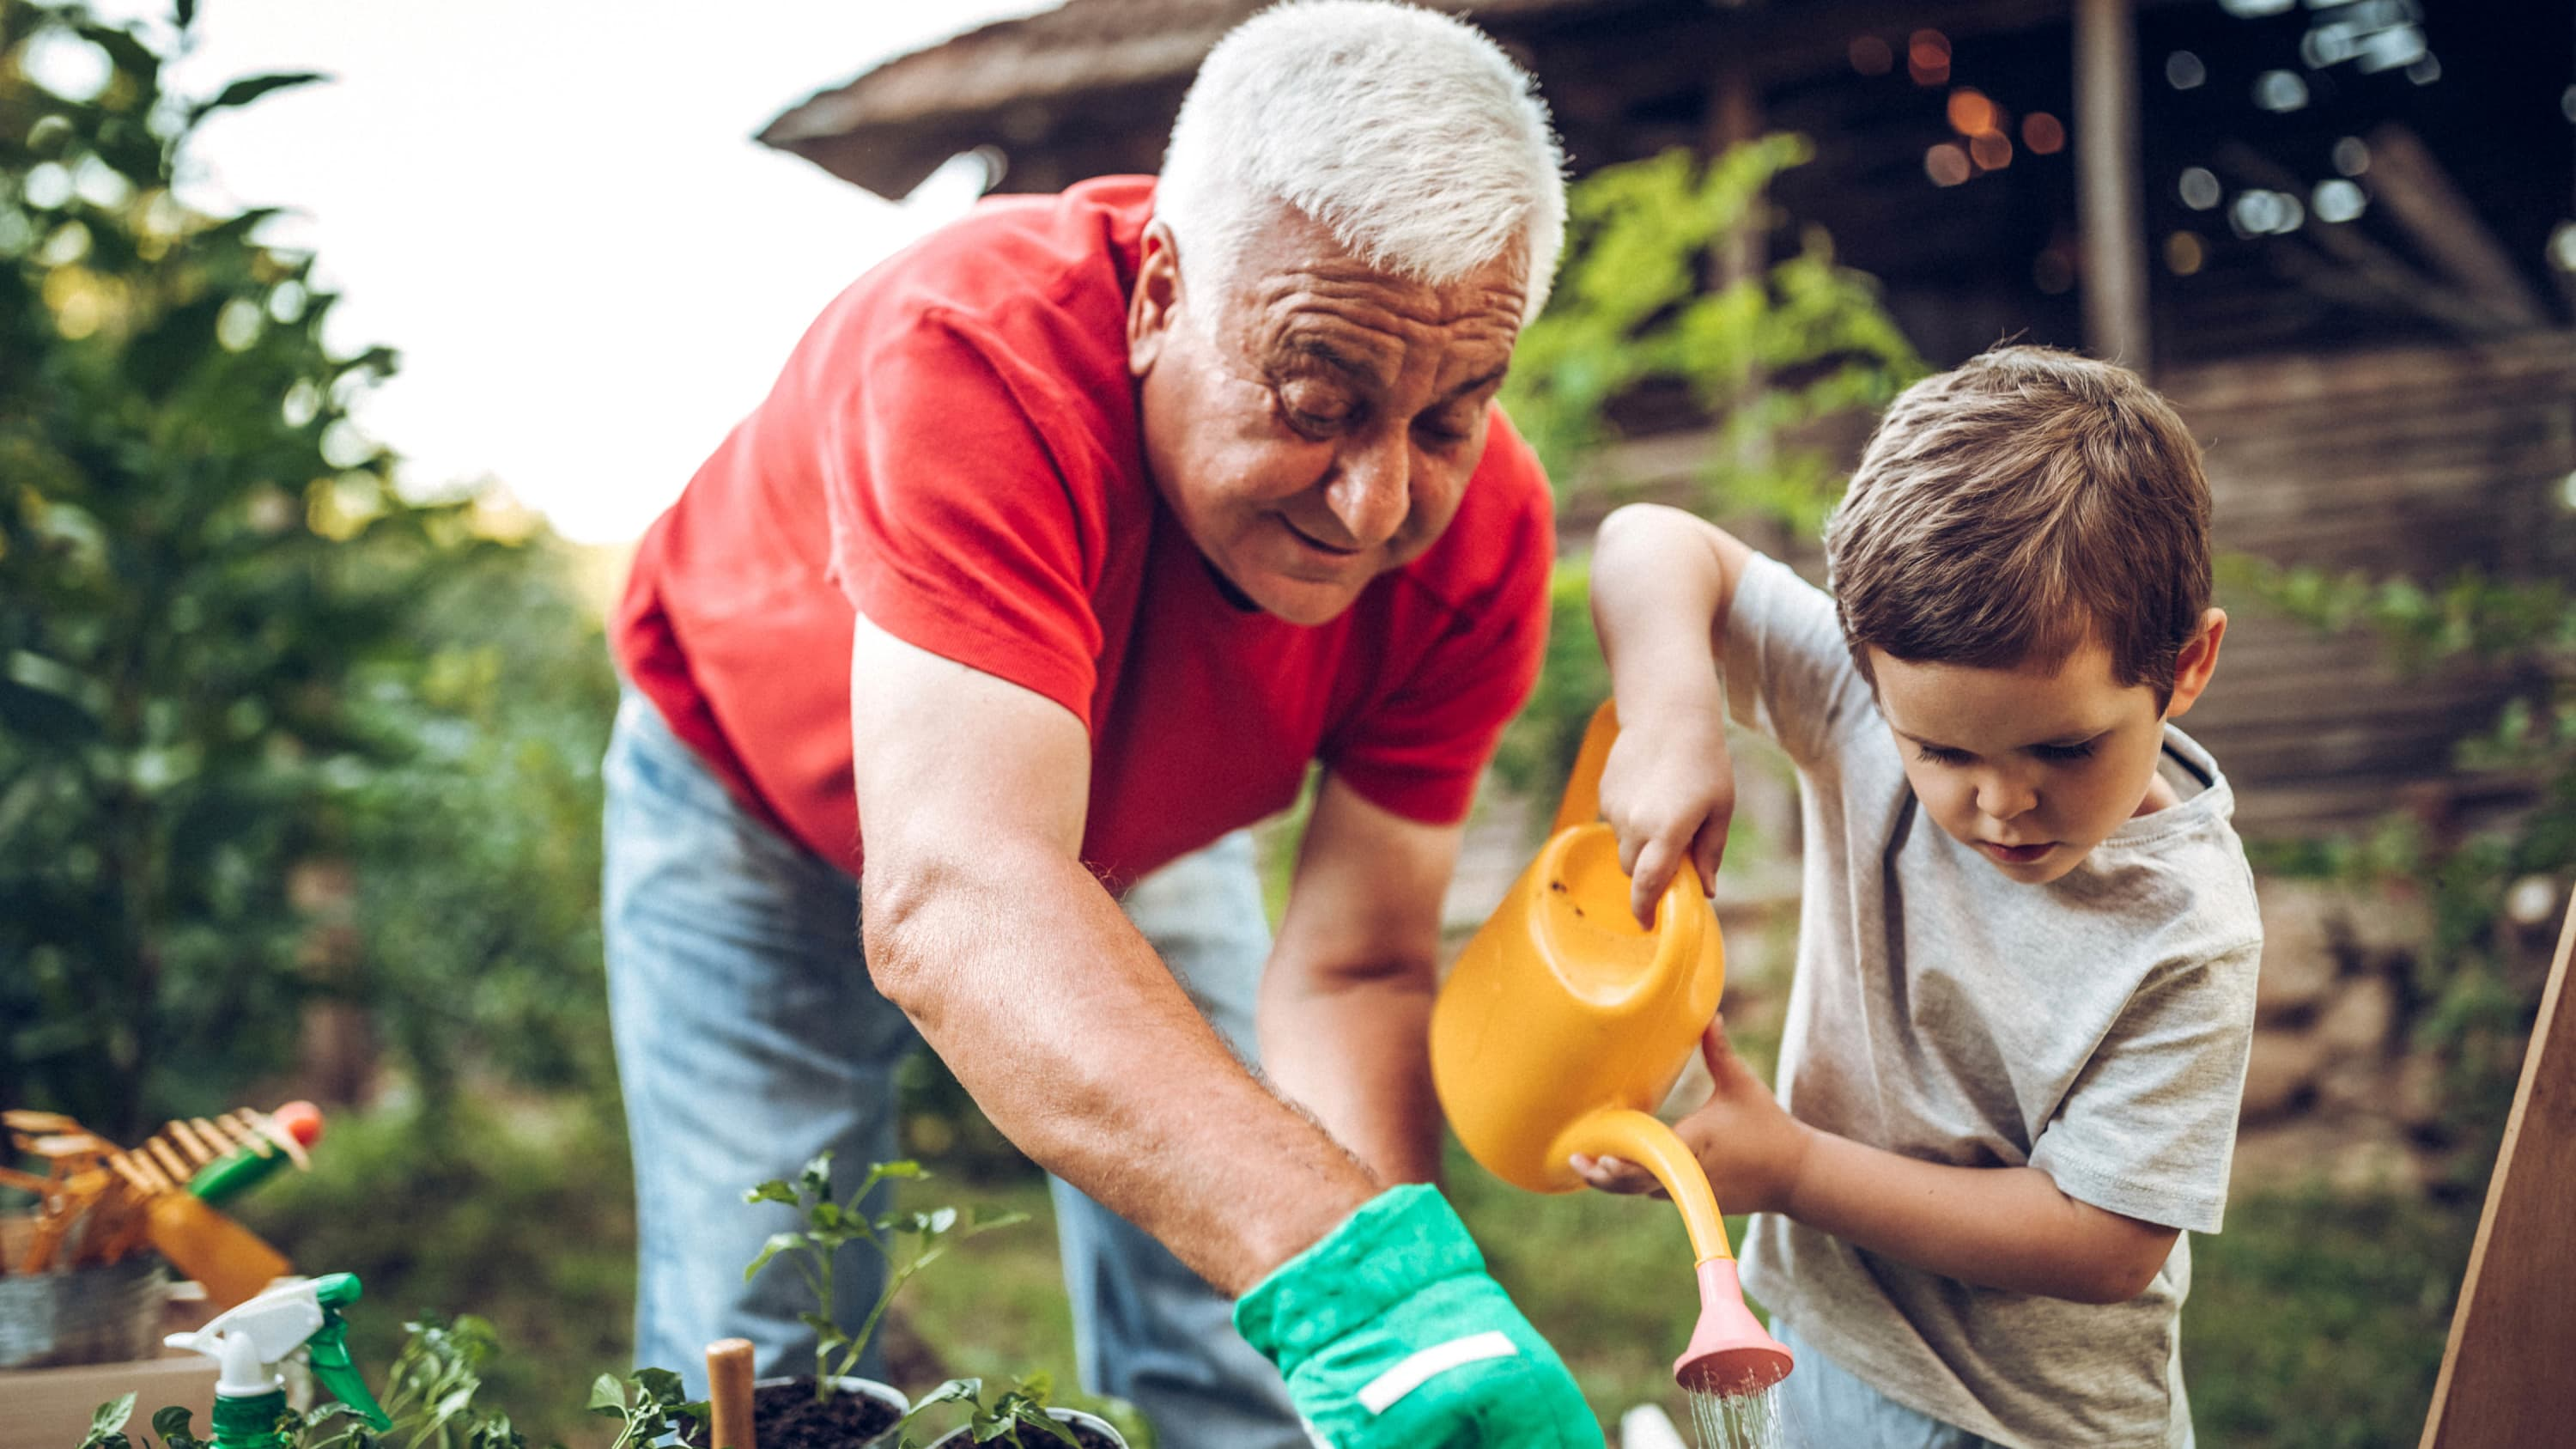 Grandfather with a VAD tends the garden with his grandson.